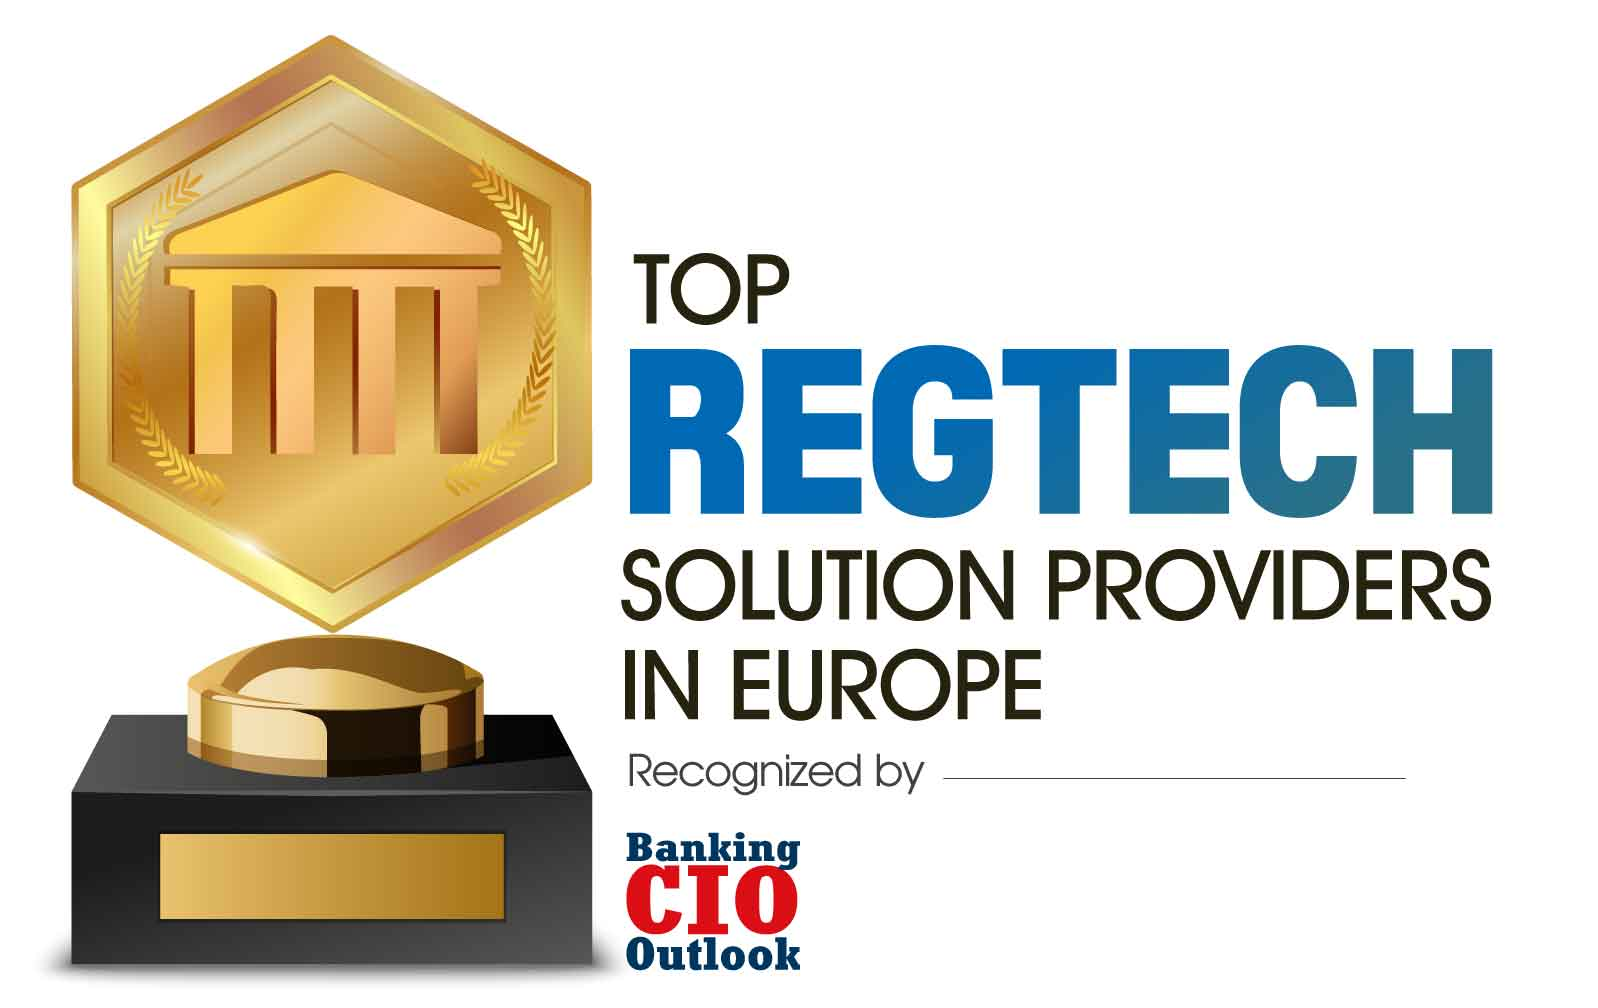 Top Regtech Solution Companies in Europe